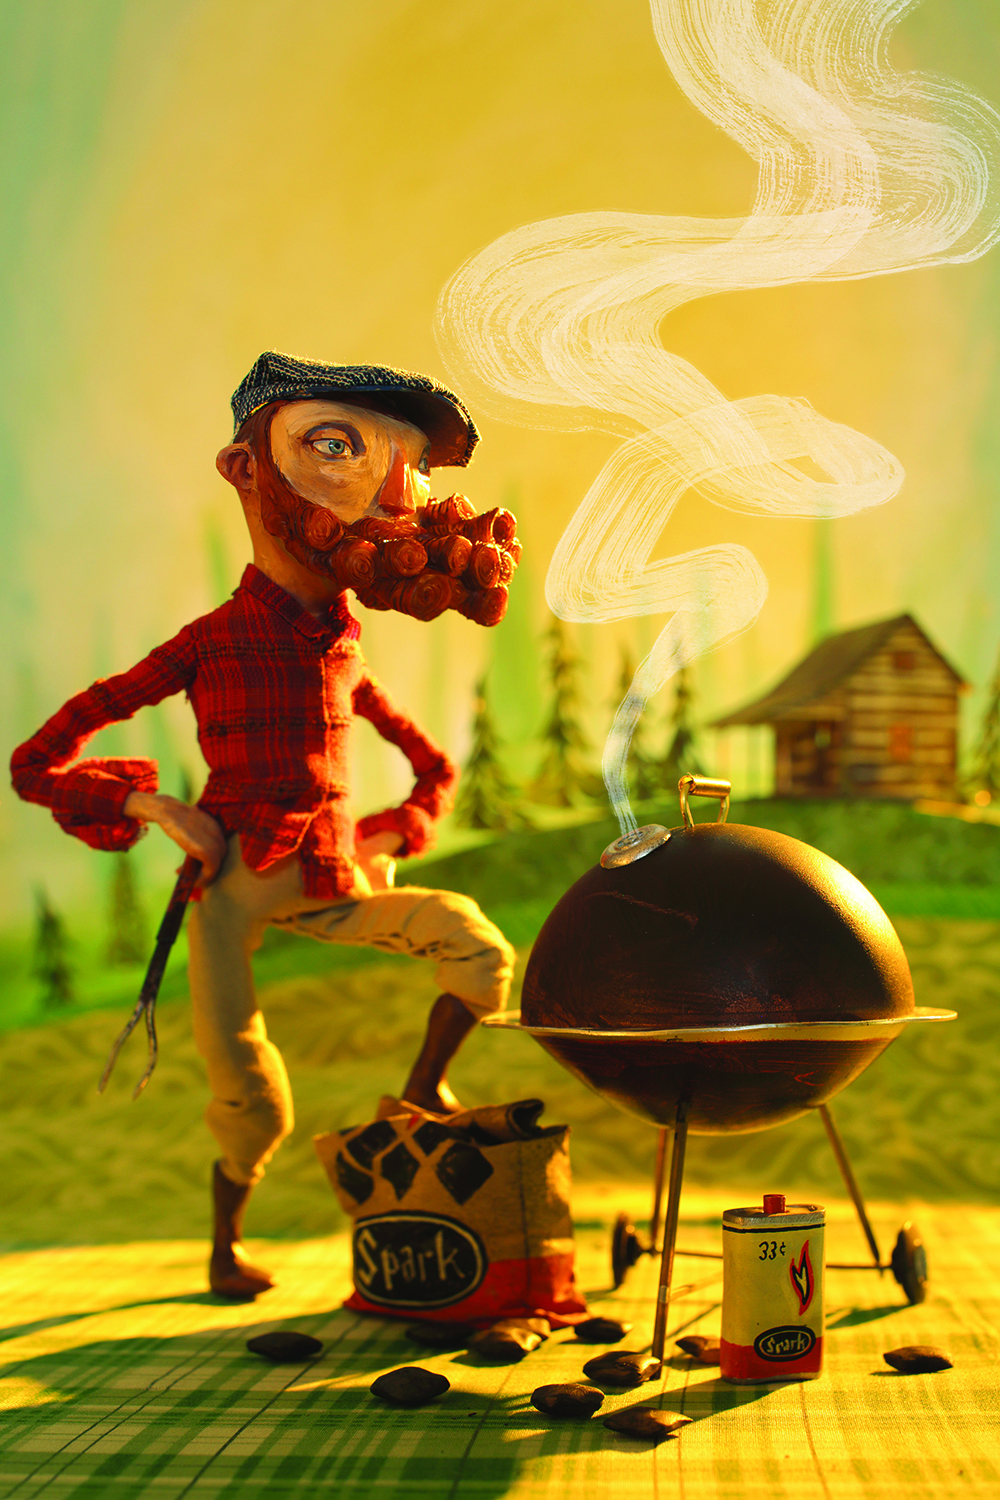 SOI 58 2015 - ARTIST: Red Nose StudioTITLE: Dude GrillingCLIENT: Angie's List